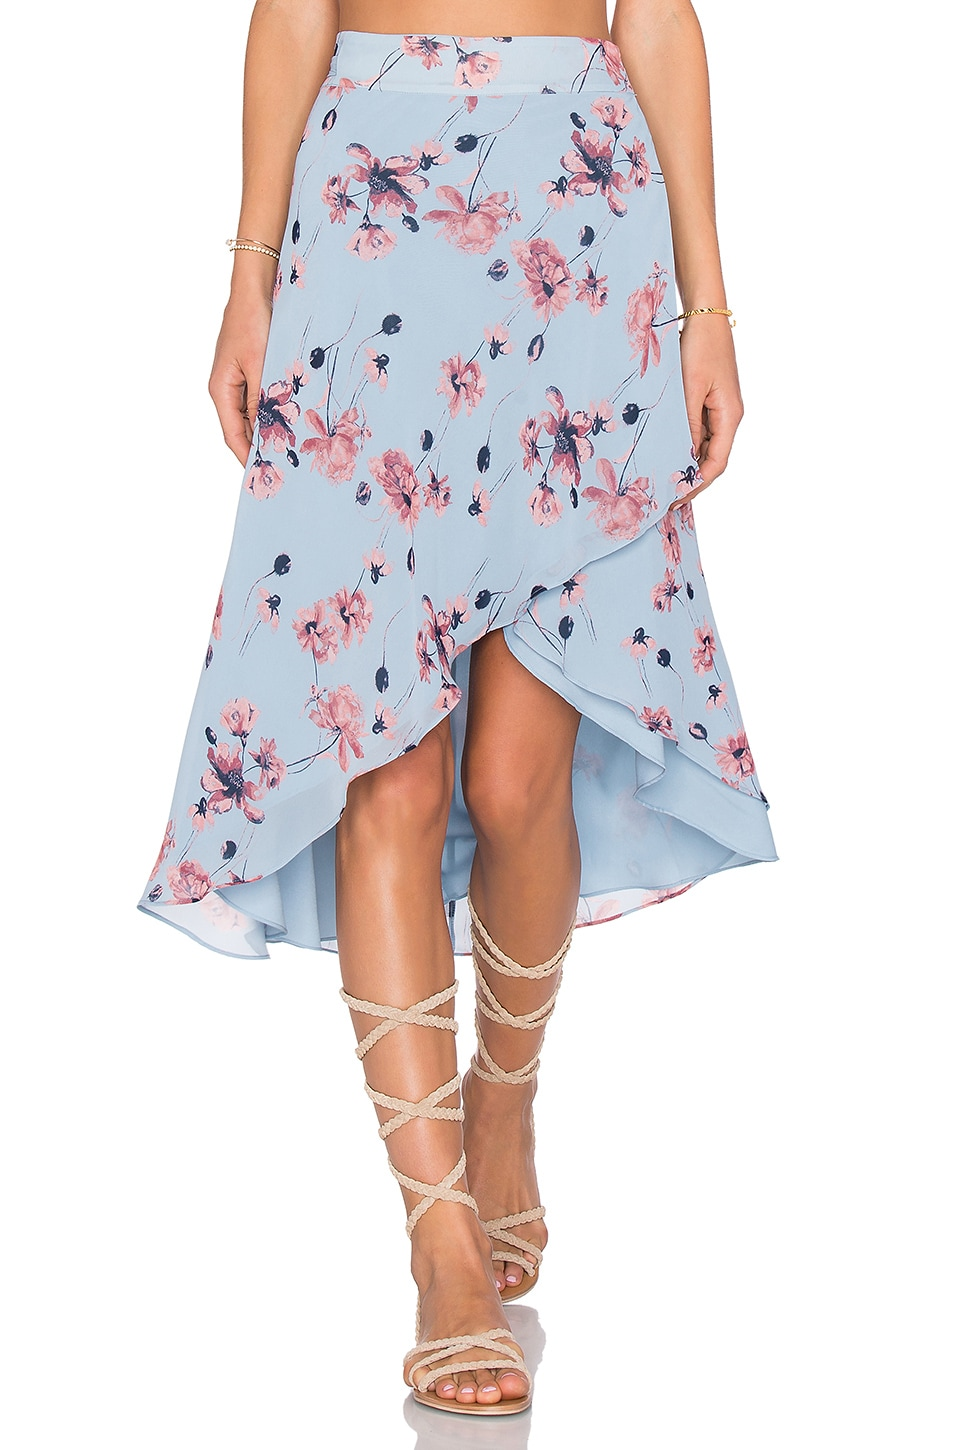 House of Harlow 1960 x REVOLVE Maya Wrap Skirt in Blue Floral